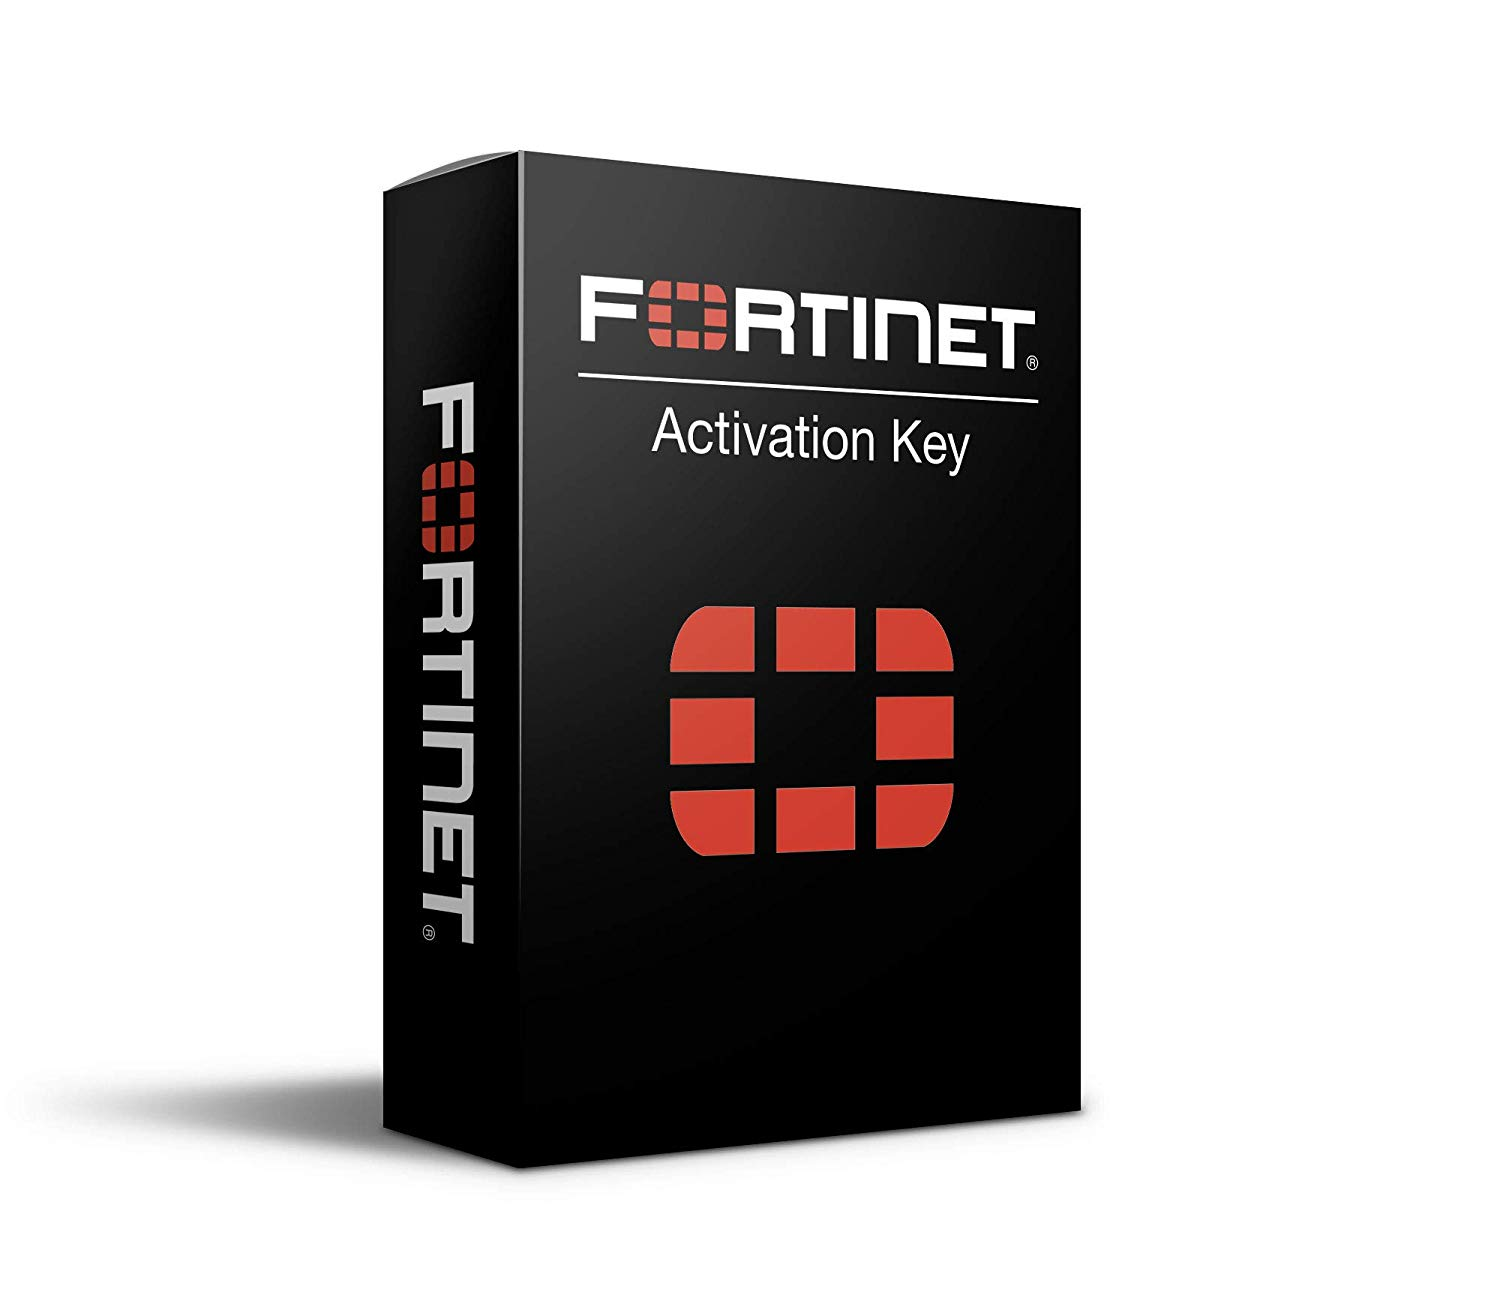 FORTINET | FC-10-0VM08-643-02-12 | FortiMail-VM08 1 Year 24x7 FortiCare and FortiGuard Enterprise ATP Bundle Contract